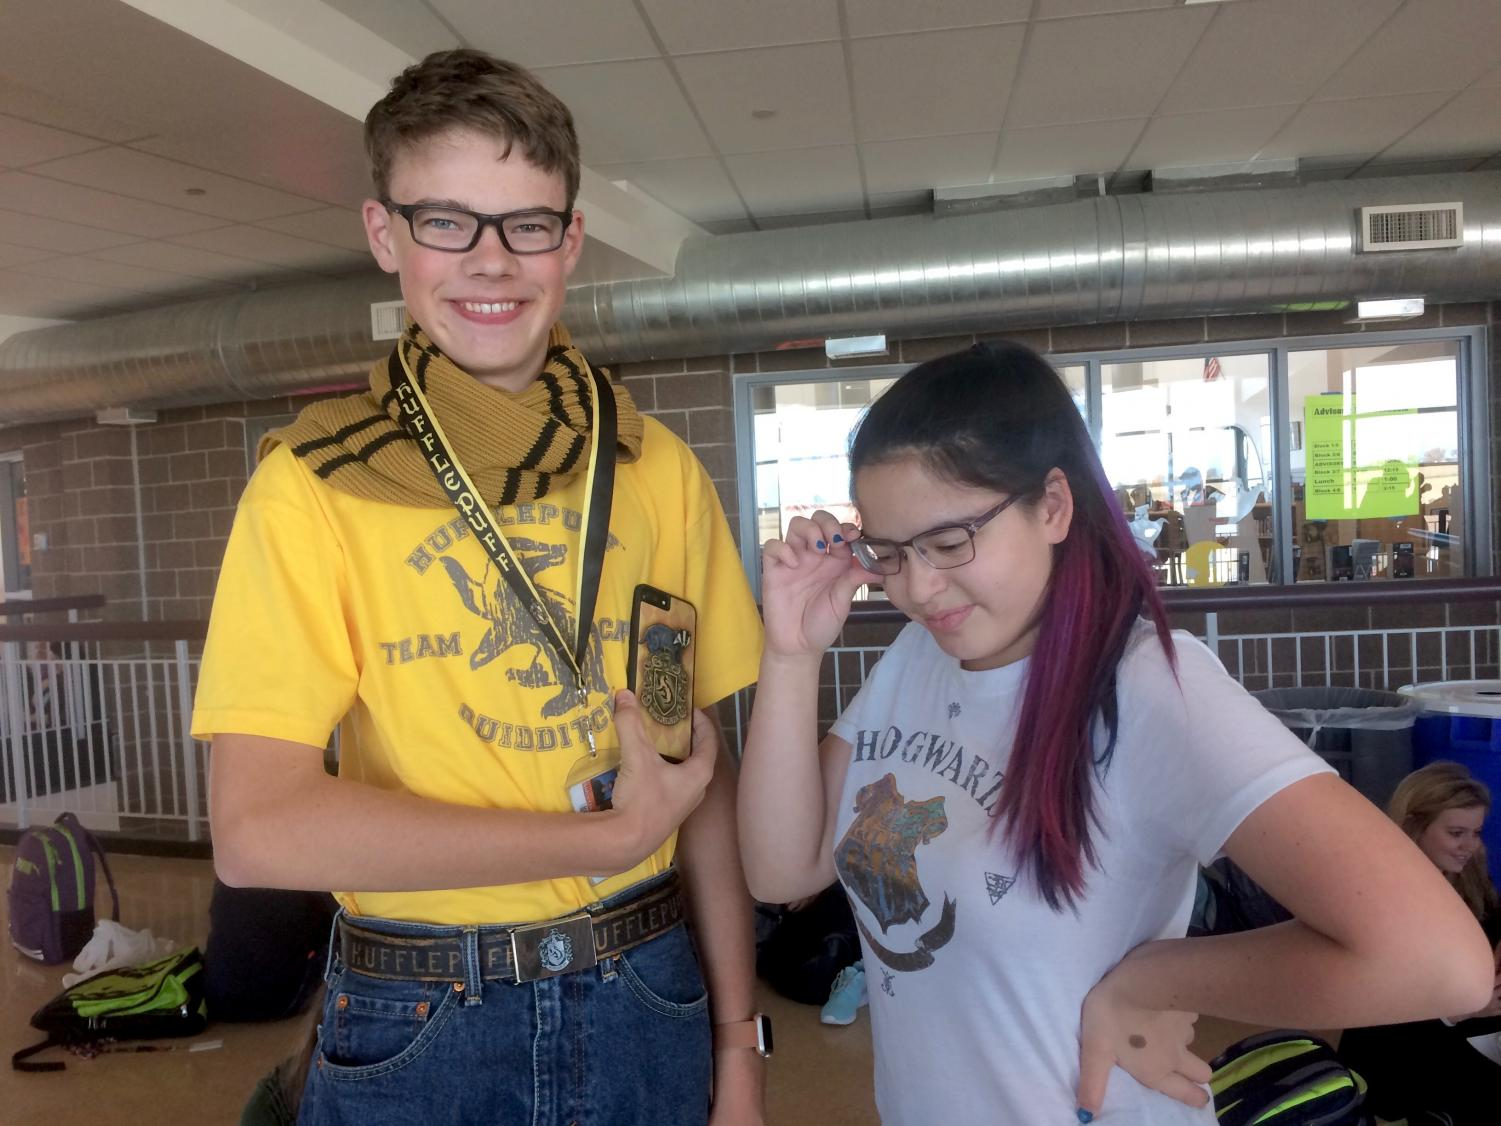 Sophomores Aiden Owen and Brandi Tracy pose wearing their Harry Potter merchandise.